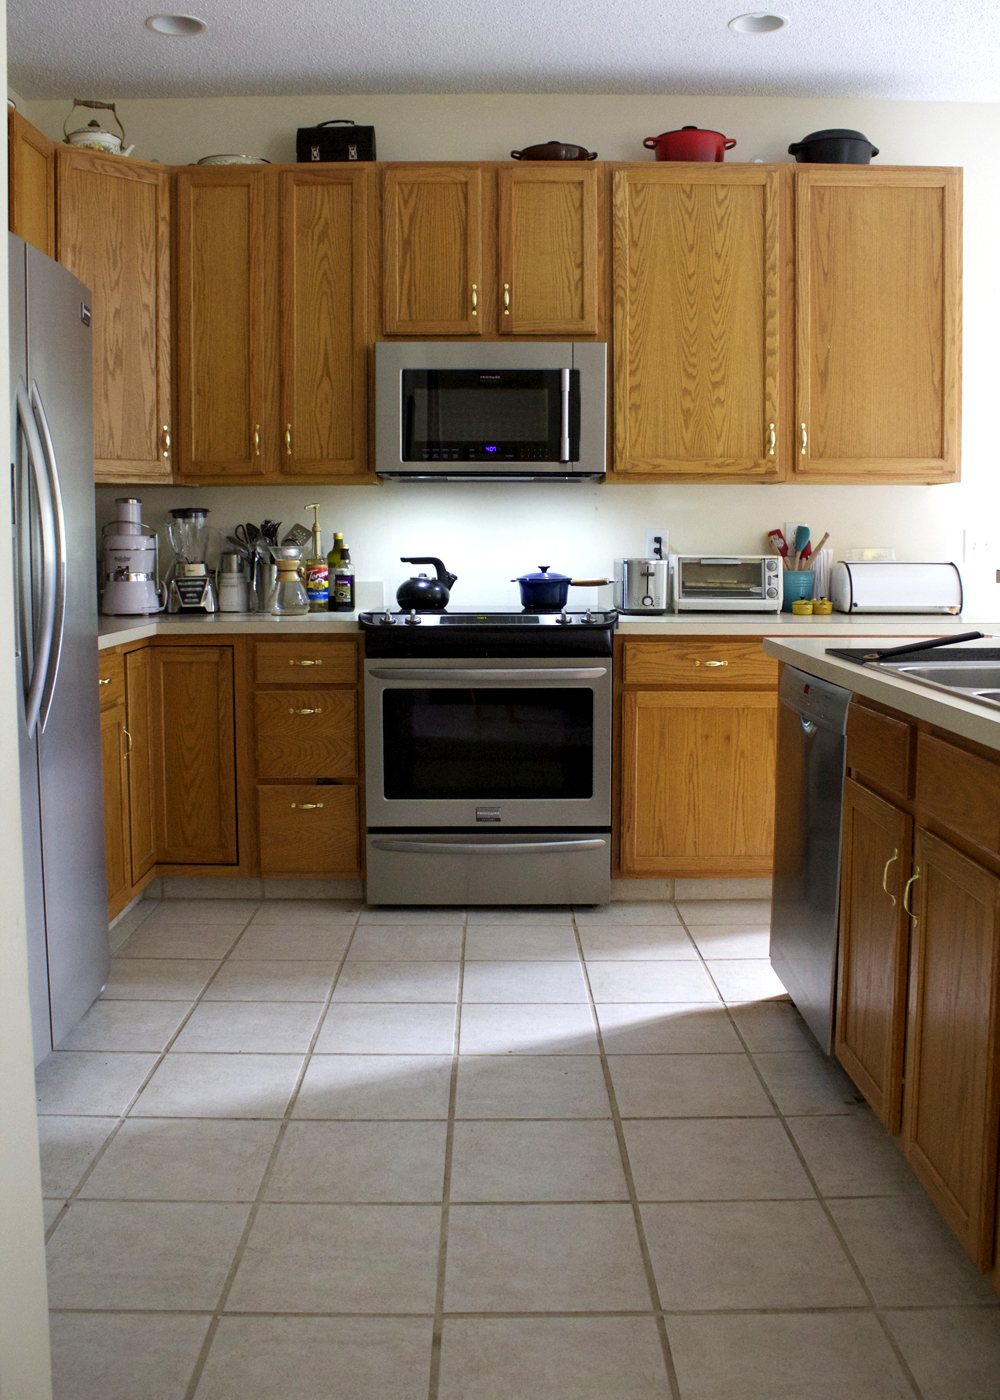 The Beginning of a Small-Budget Kitchen Makeover